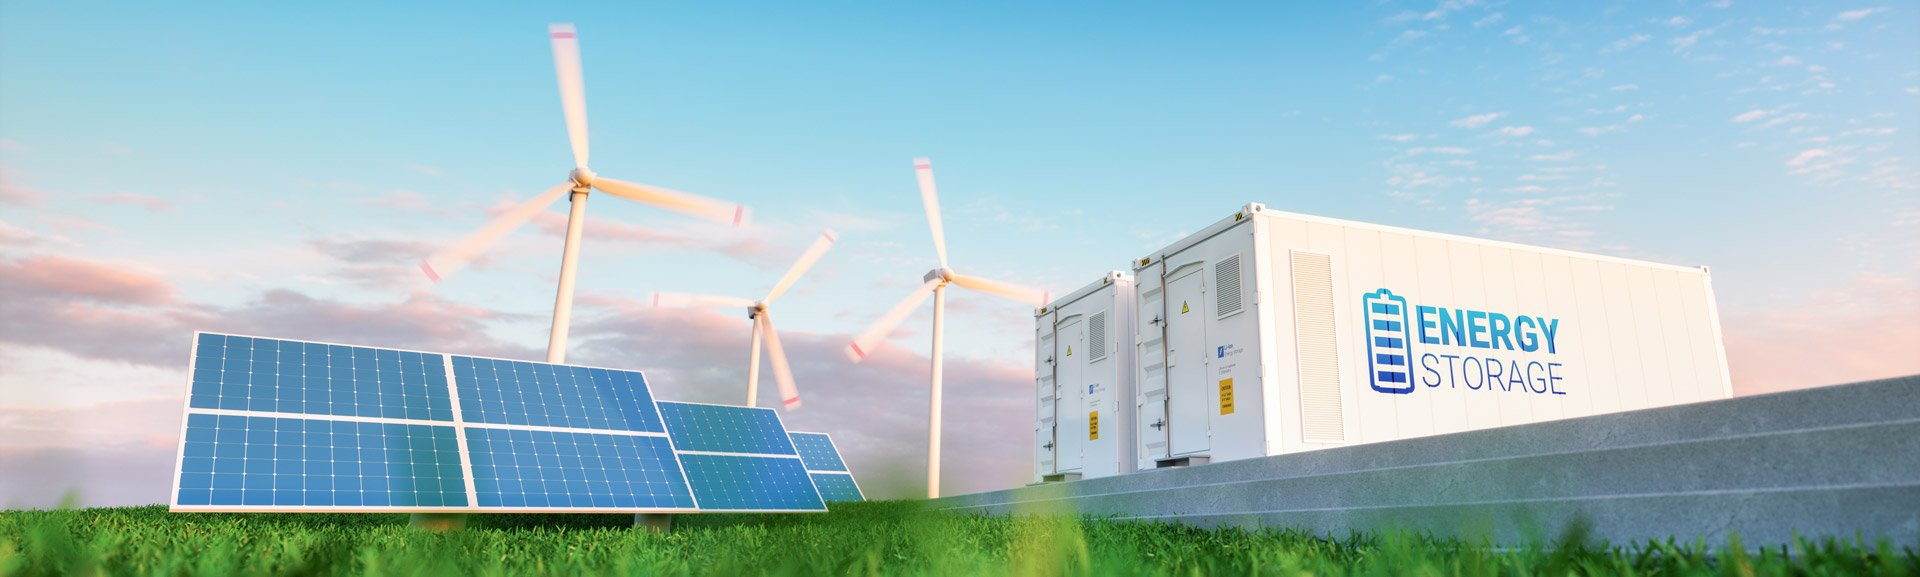 Brill Power Battery Management System is ideal for stationary energy storage solutions